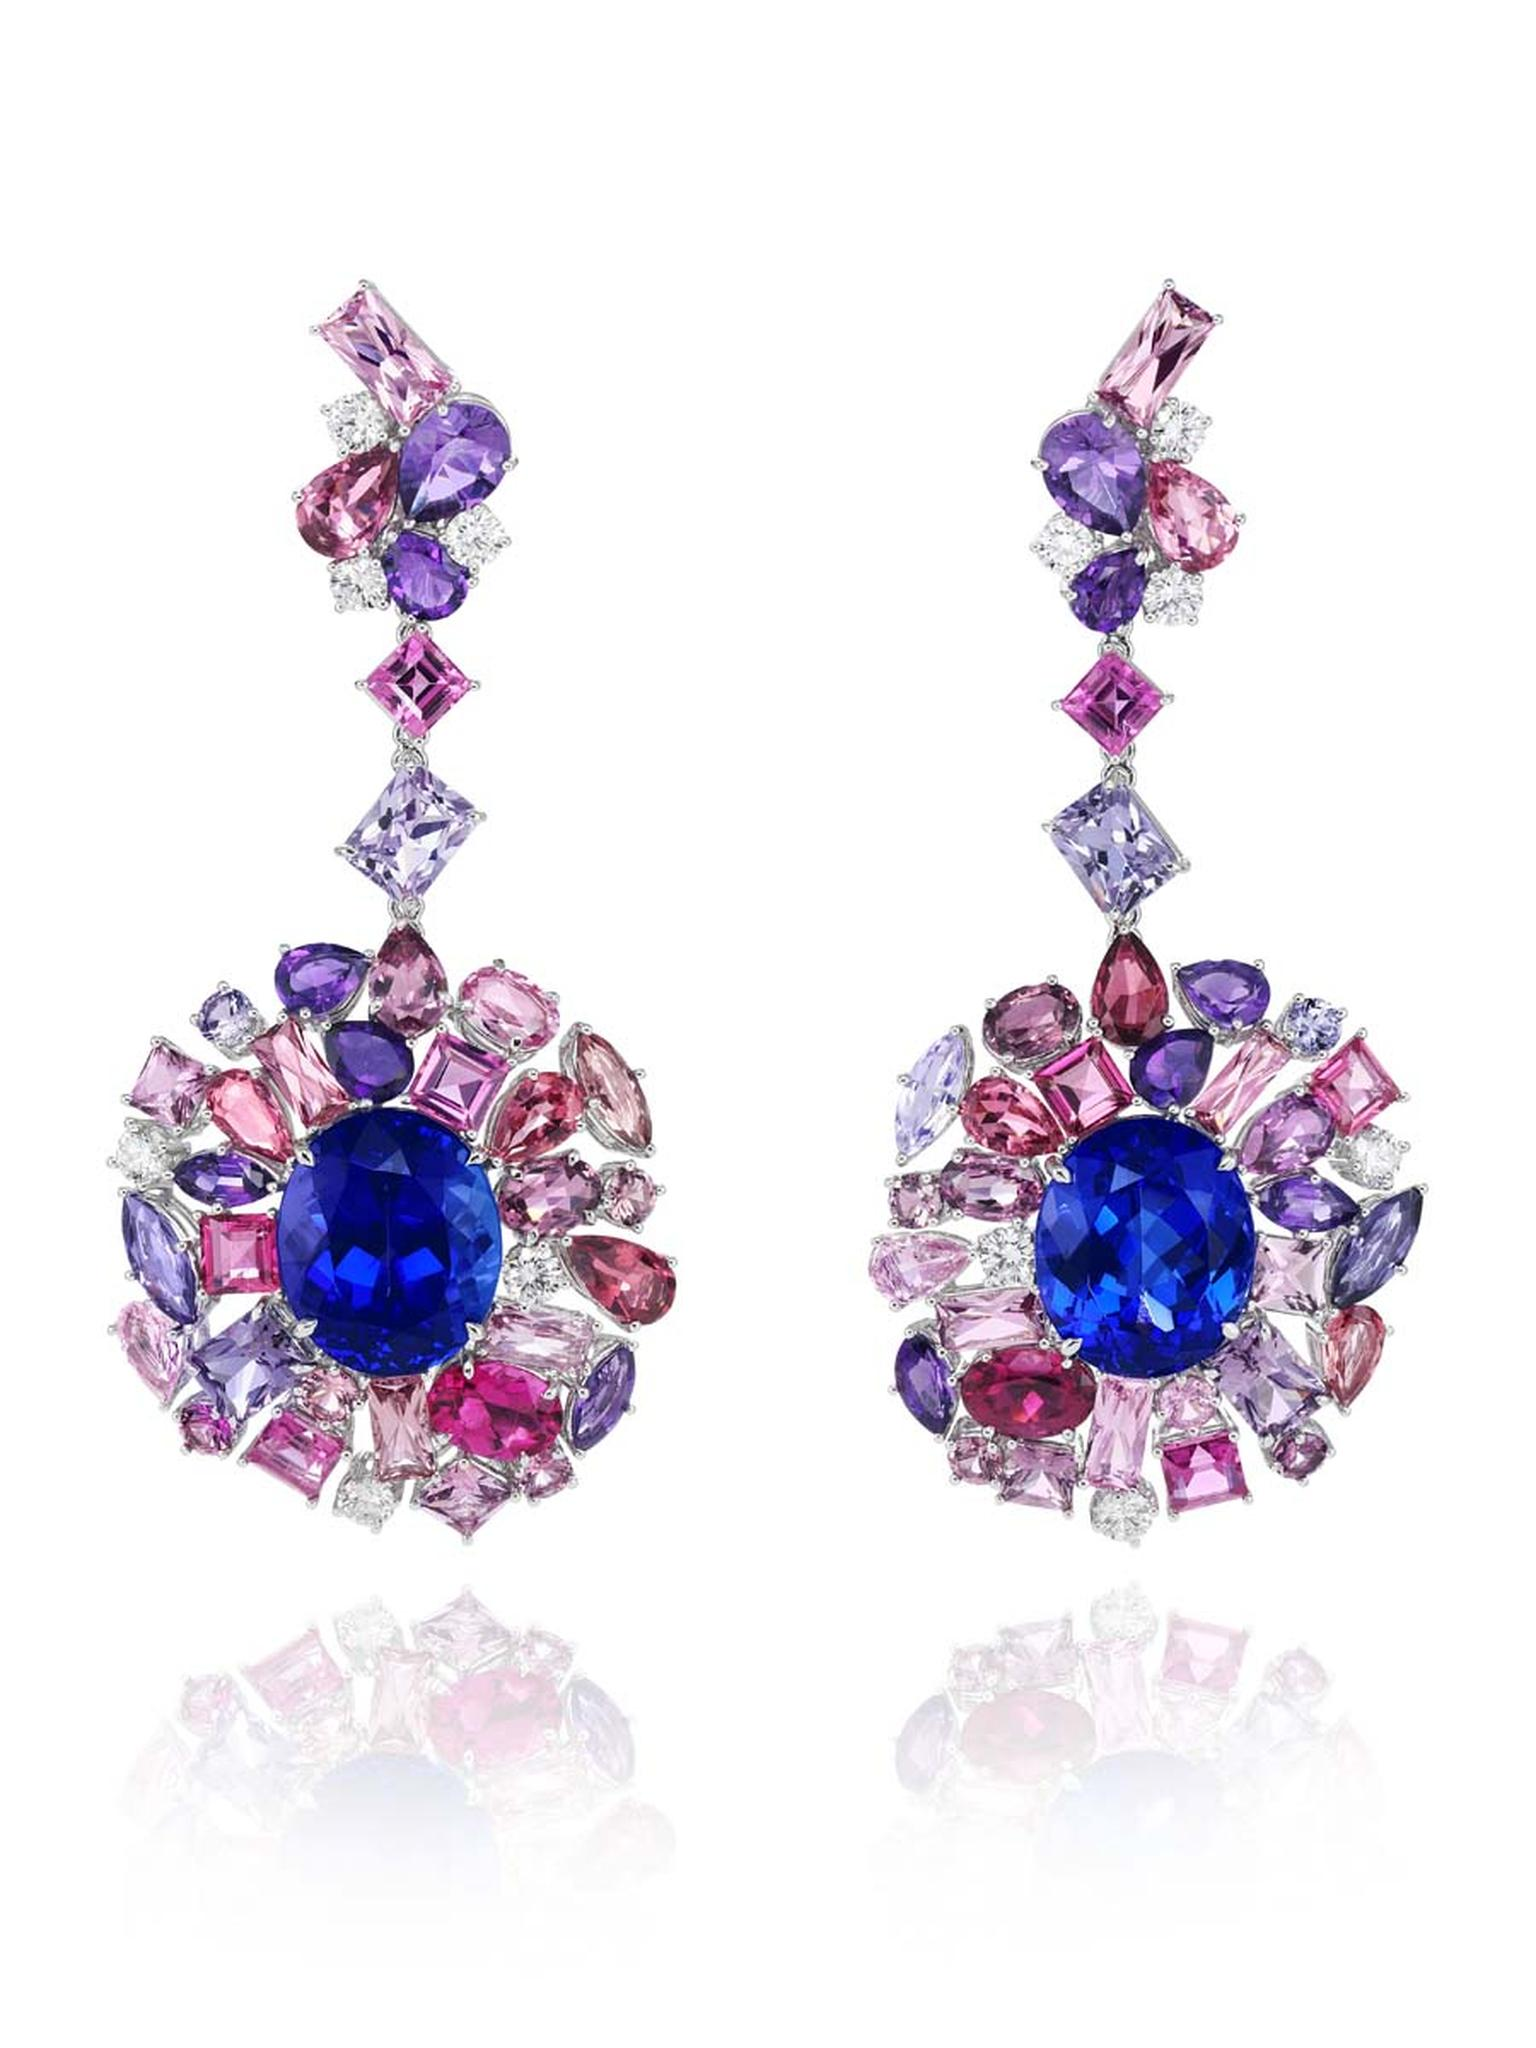 849374-1001 Tanzanite Earrings  from the Red Carpet Collection 2013Chopard.jpg